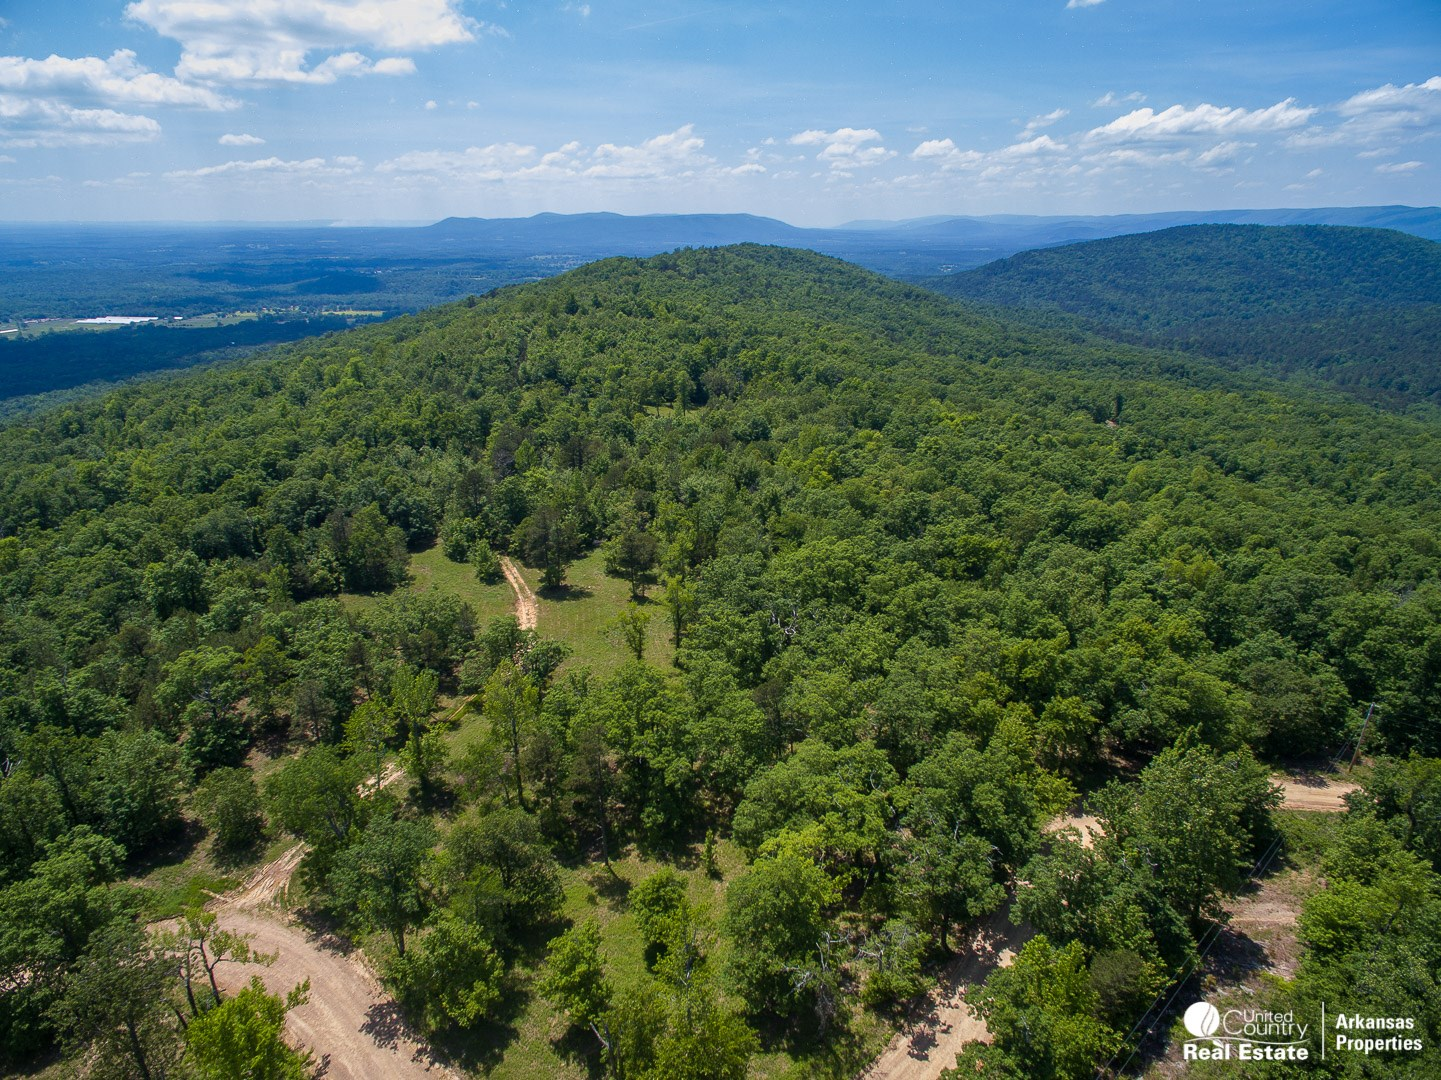 Small acreage tracts for sale with mountain views.